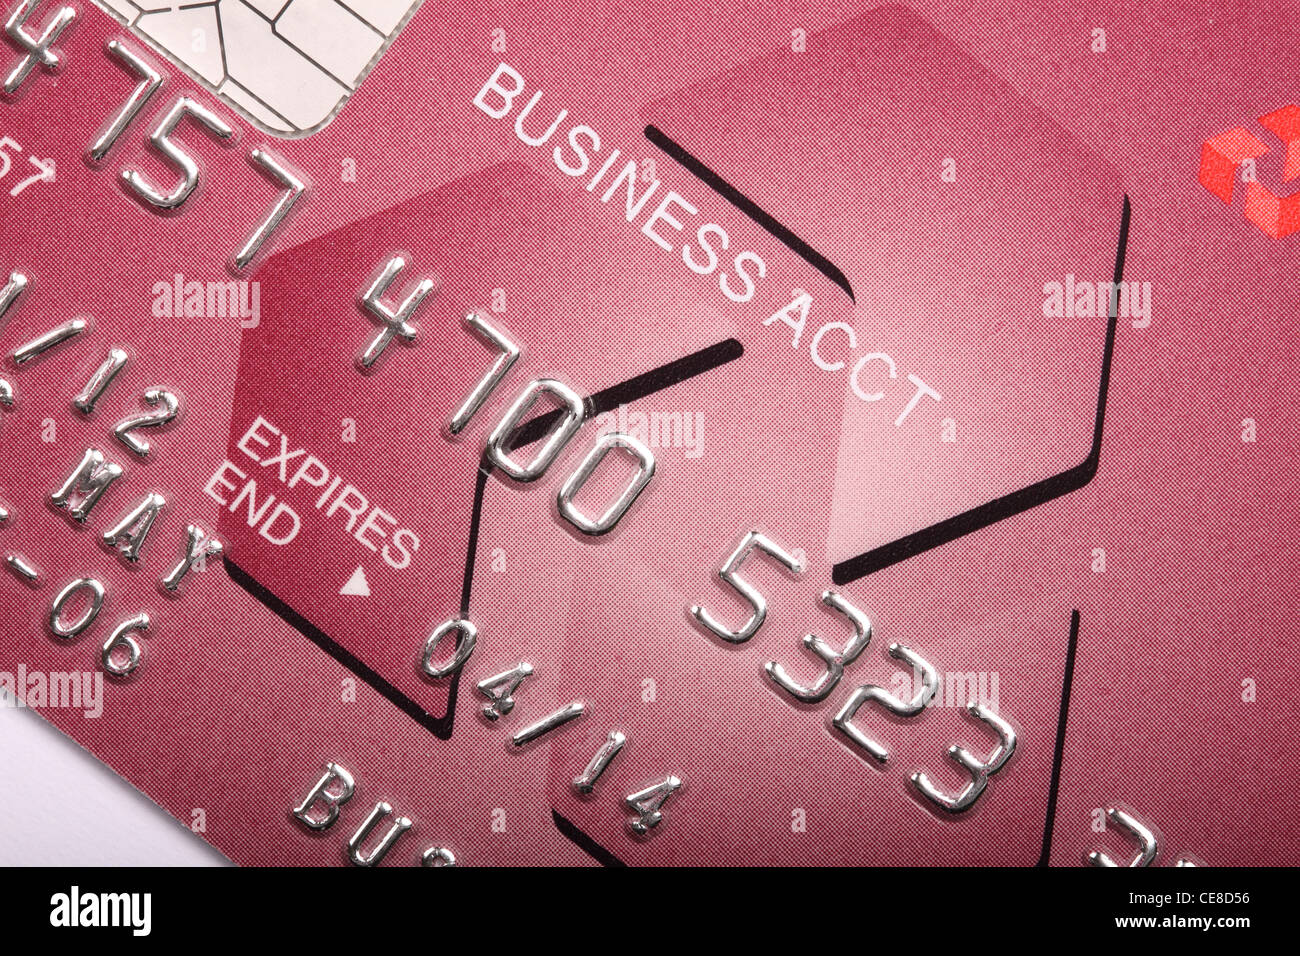 Business company account credit card UK Nat West - Stock Image